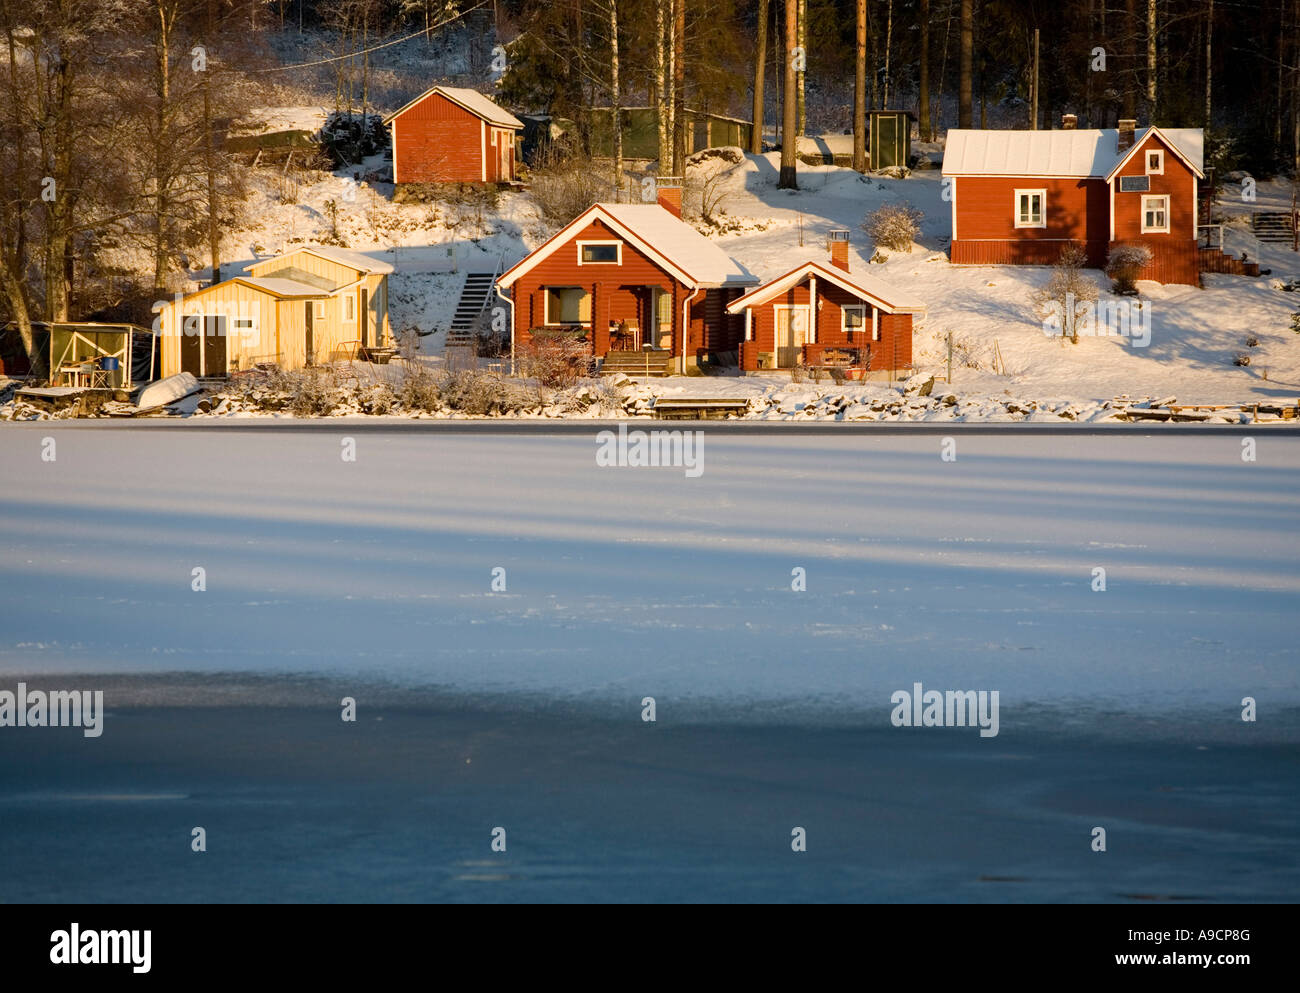 red cabin lake finland stockfotos red cabin lake finland bilder alamy. Black Bedroom Furniture Sets. Home Design Ideas